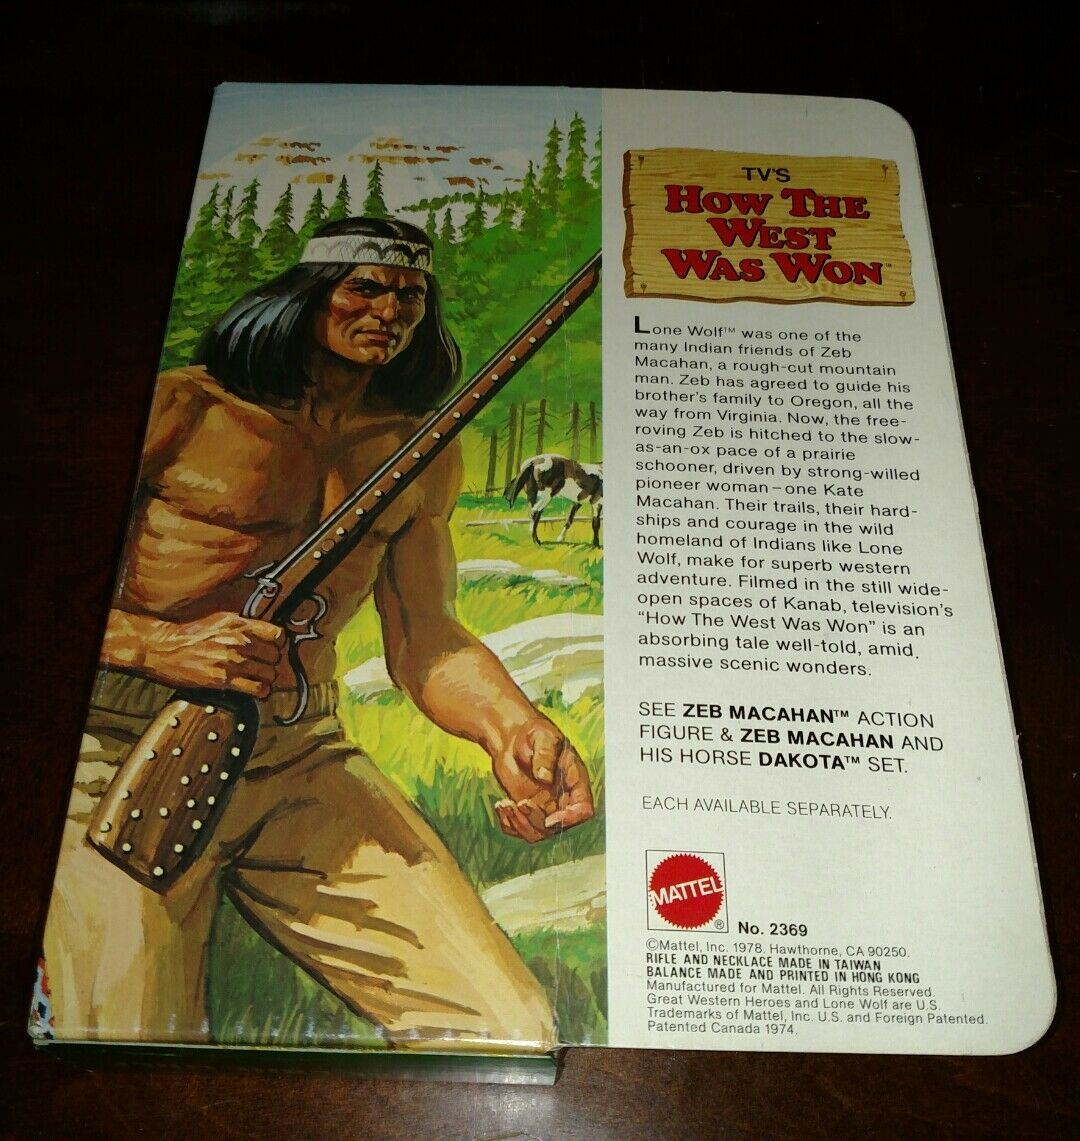 THE LONE WOLF HOW THE WEST VINTAGE WAS WON MATTEL VINTAGE WEST 1978 BRAND NEW IN THE BOX 7fc37d